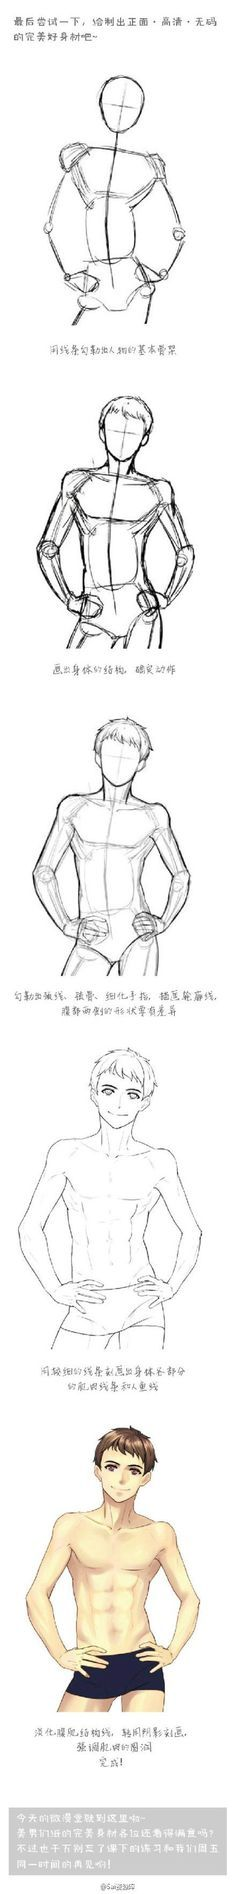 Man torso reference | Draw The Squad | Pinterest | Drawings, Anatomy ...